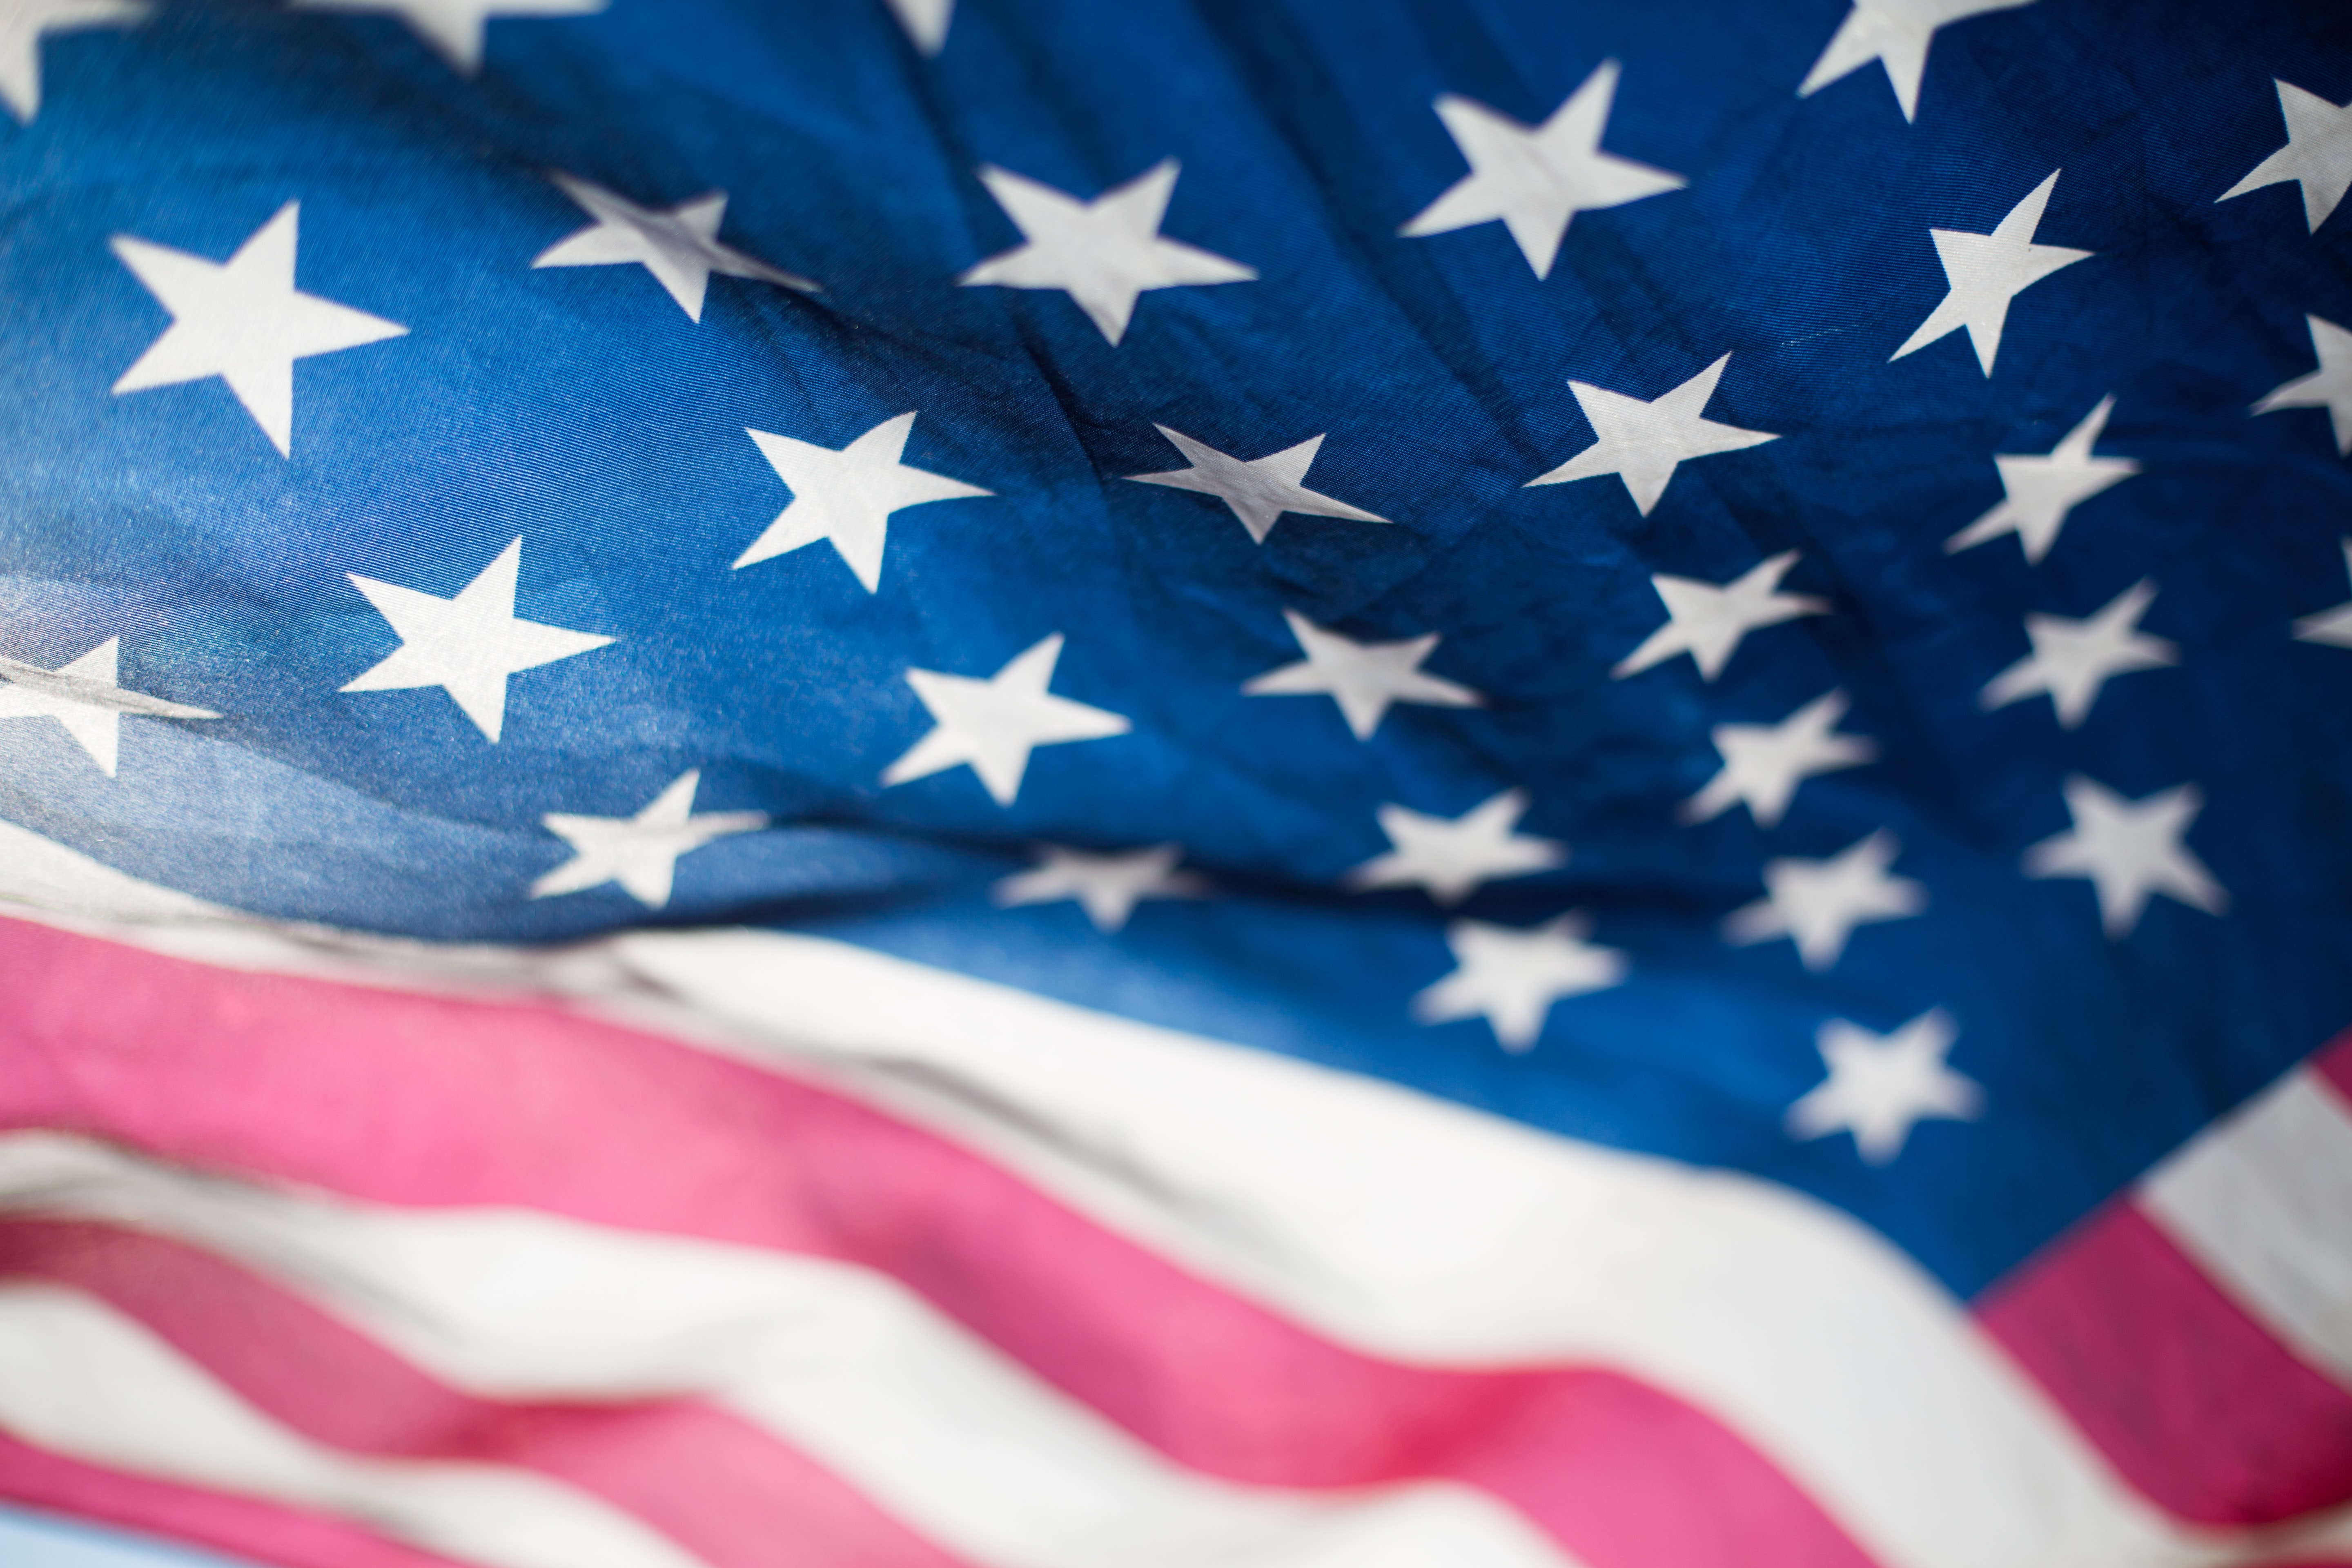 Football Player's Family Files Lawsuit Over Flag Use Incident